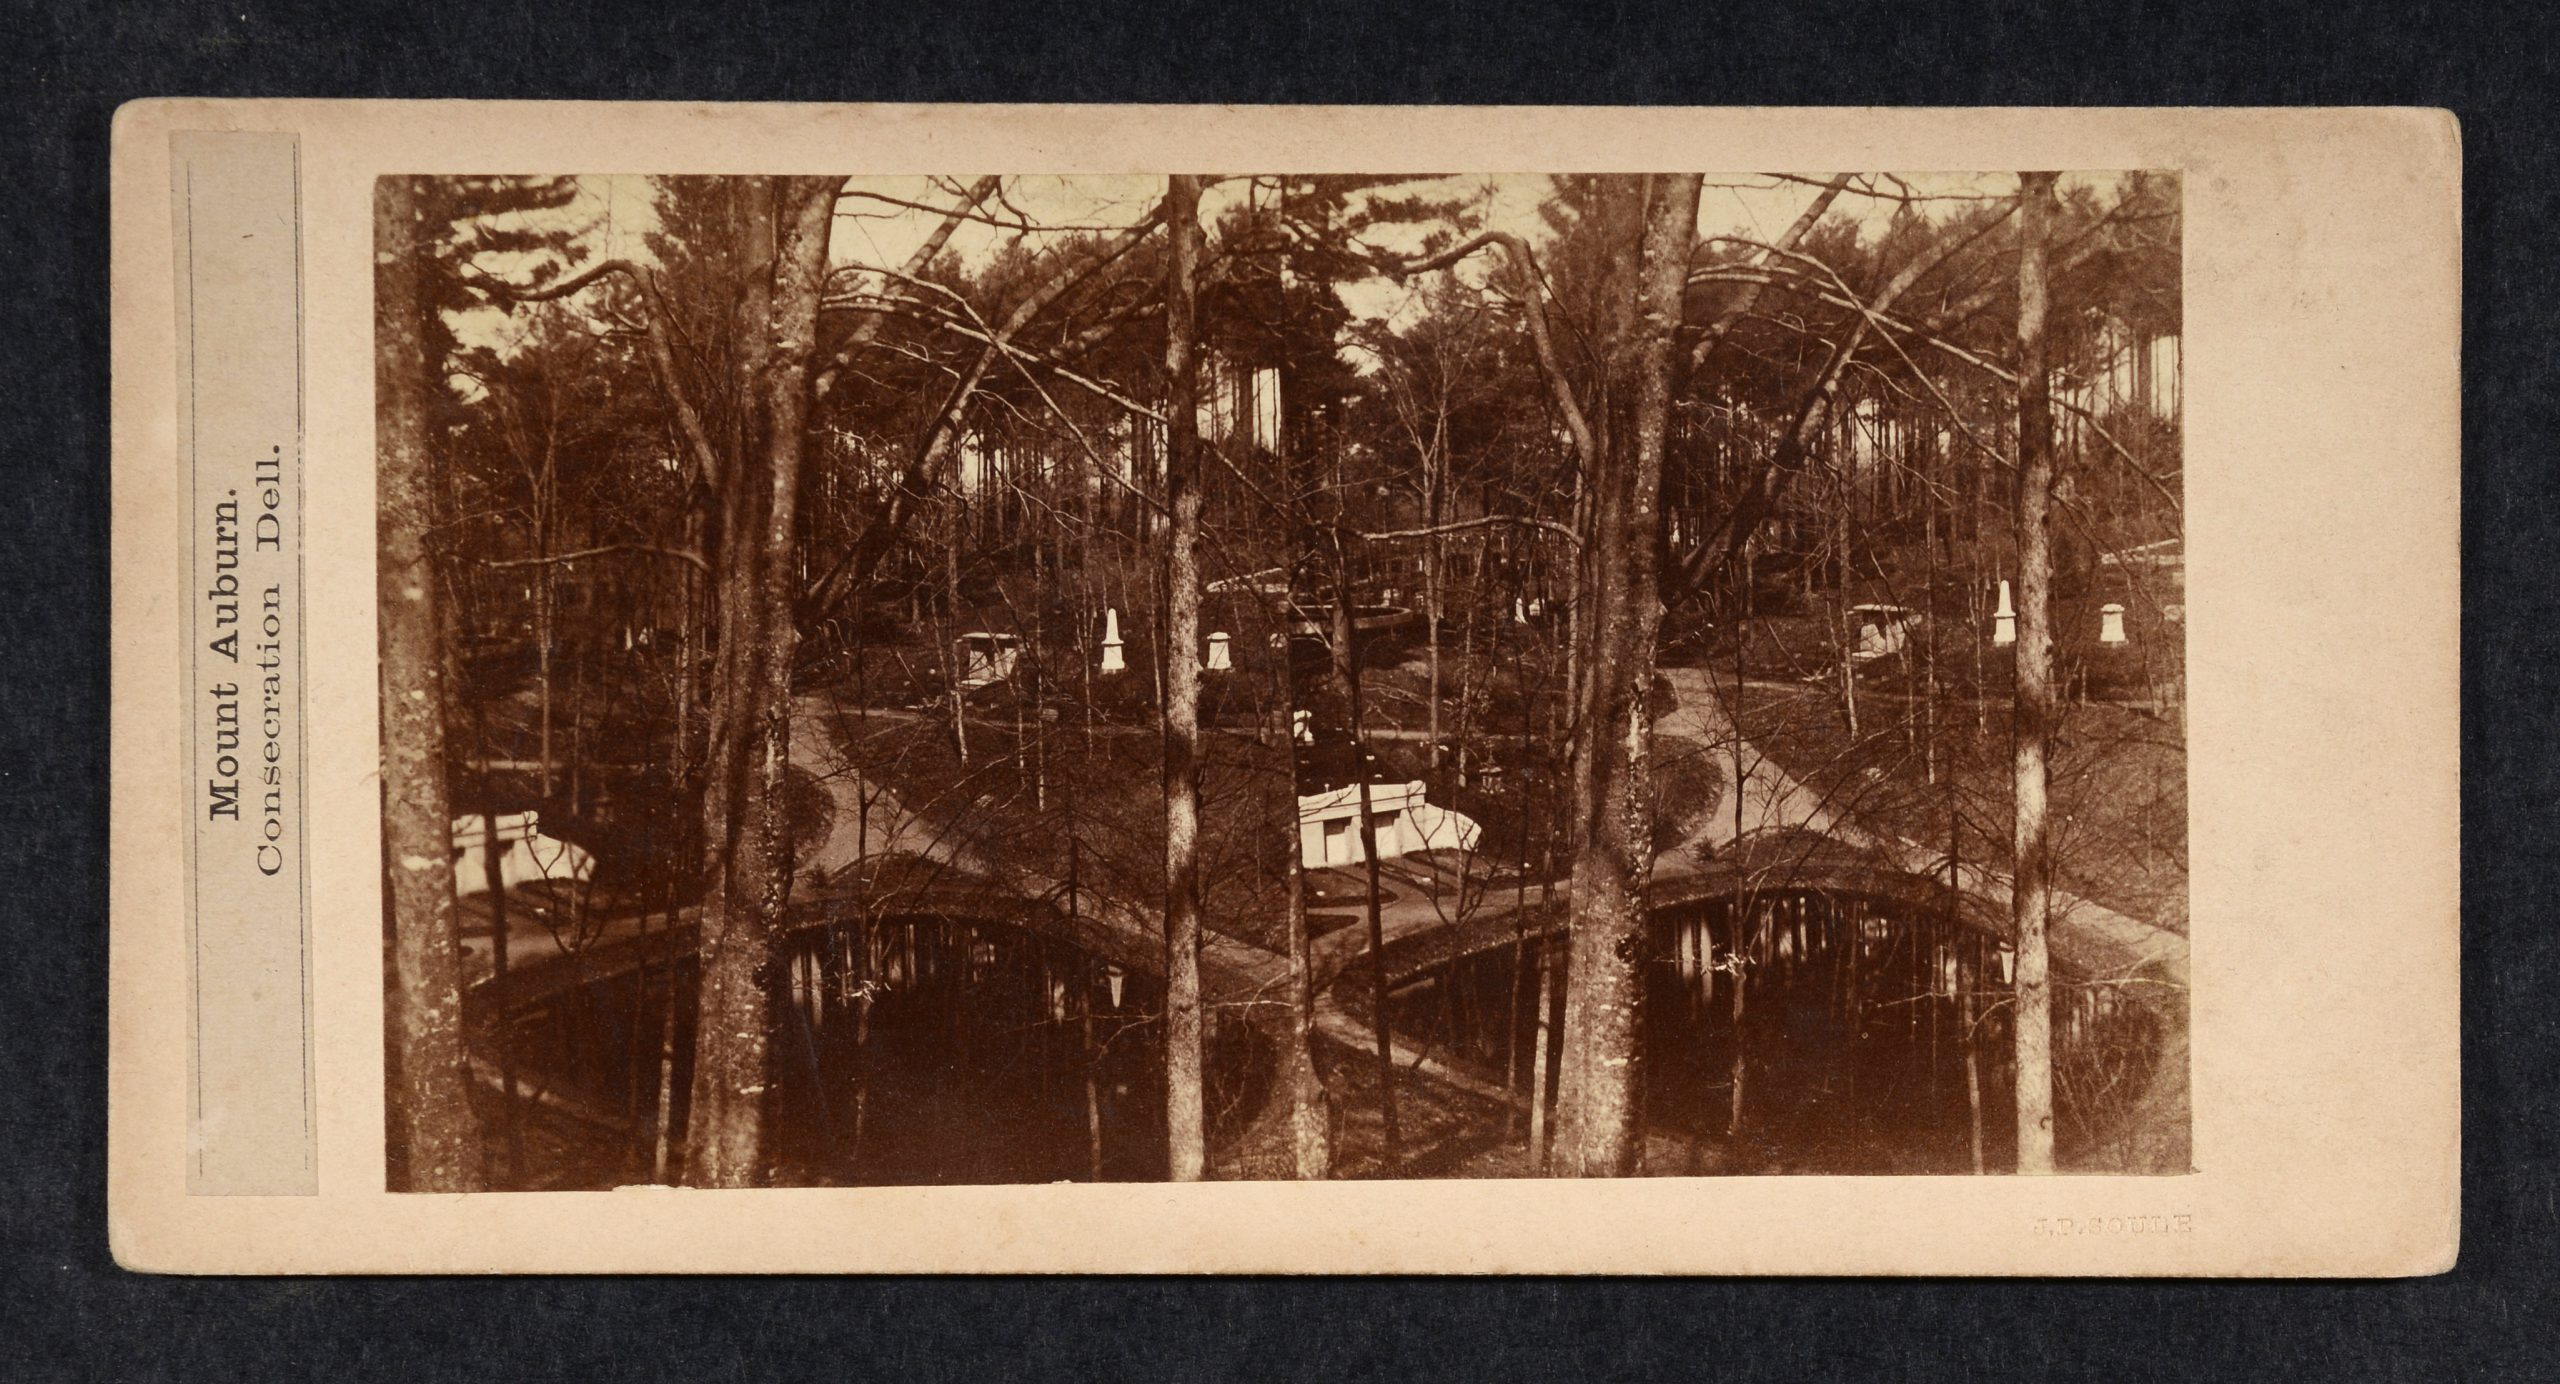 Stereoview of vernal pool below with trees, monuments and path in distance.